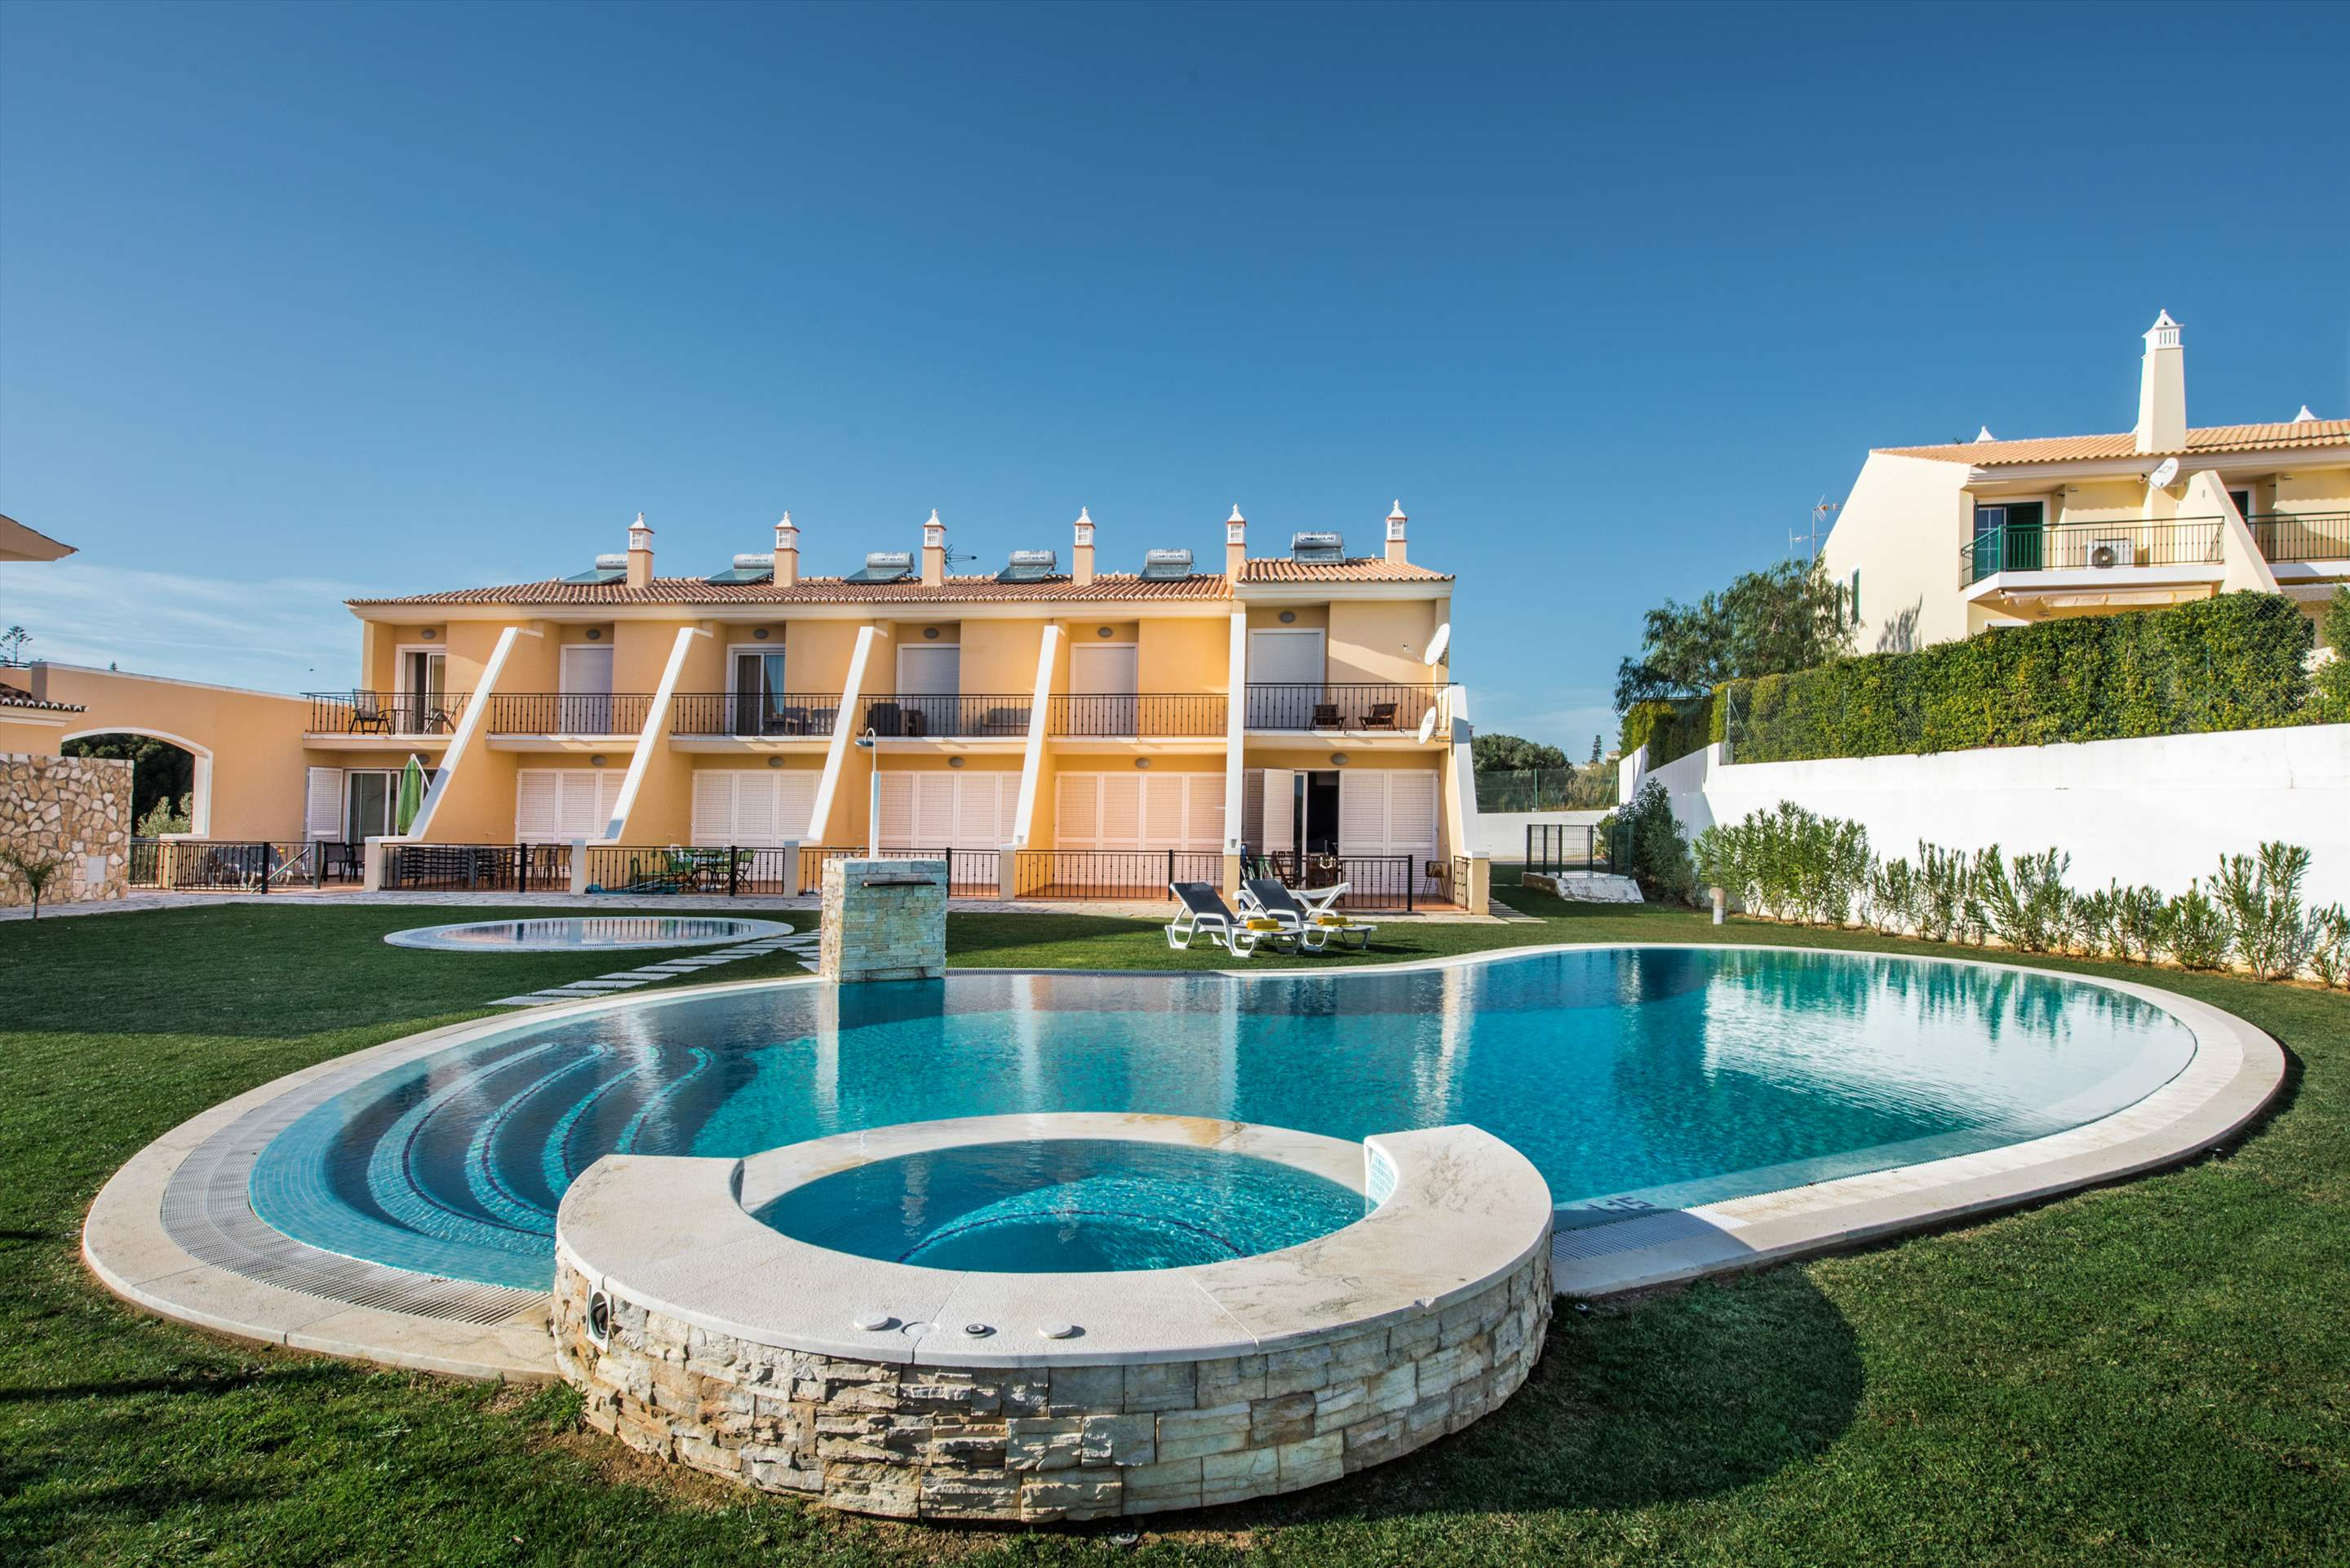 Townhouse Rosal 'D', 2 bedroom villa in Gale, Vale da Parra and Guia, Algarve Photo #6